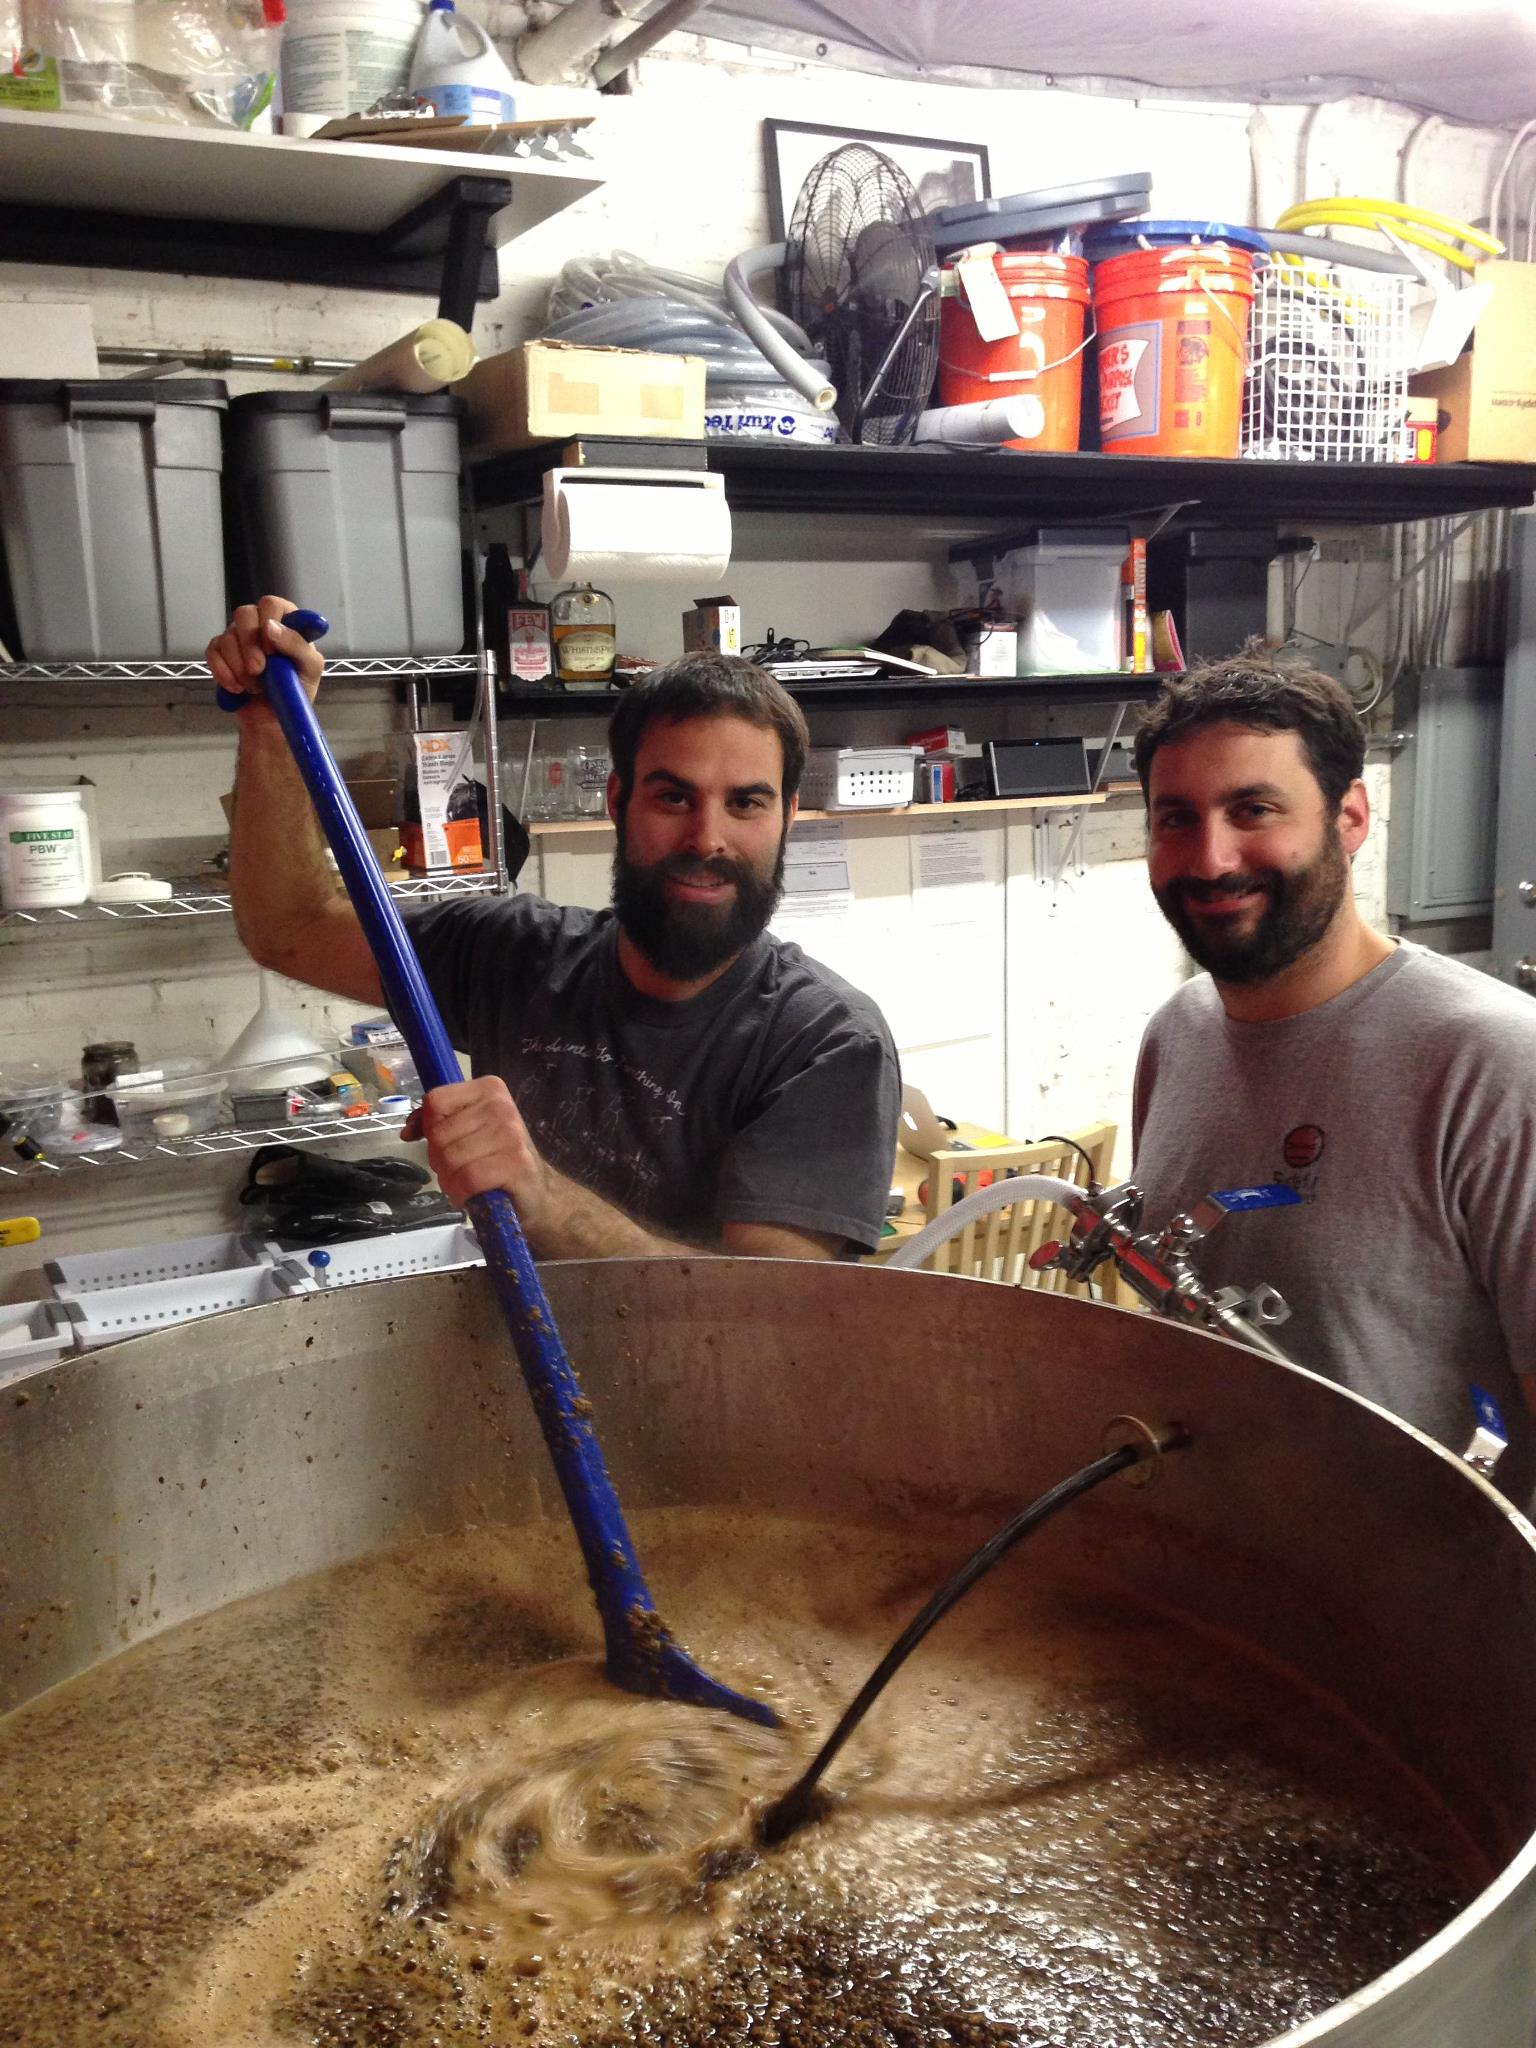 Brad & Jason on their first official brew day